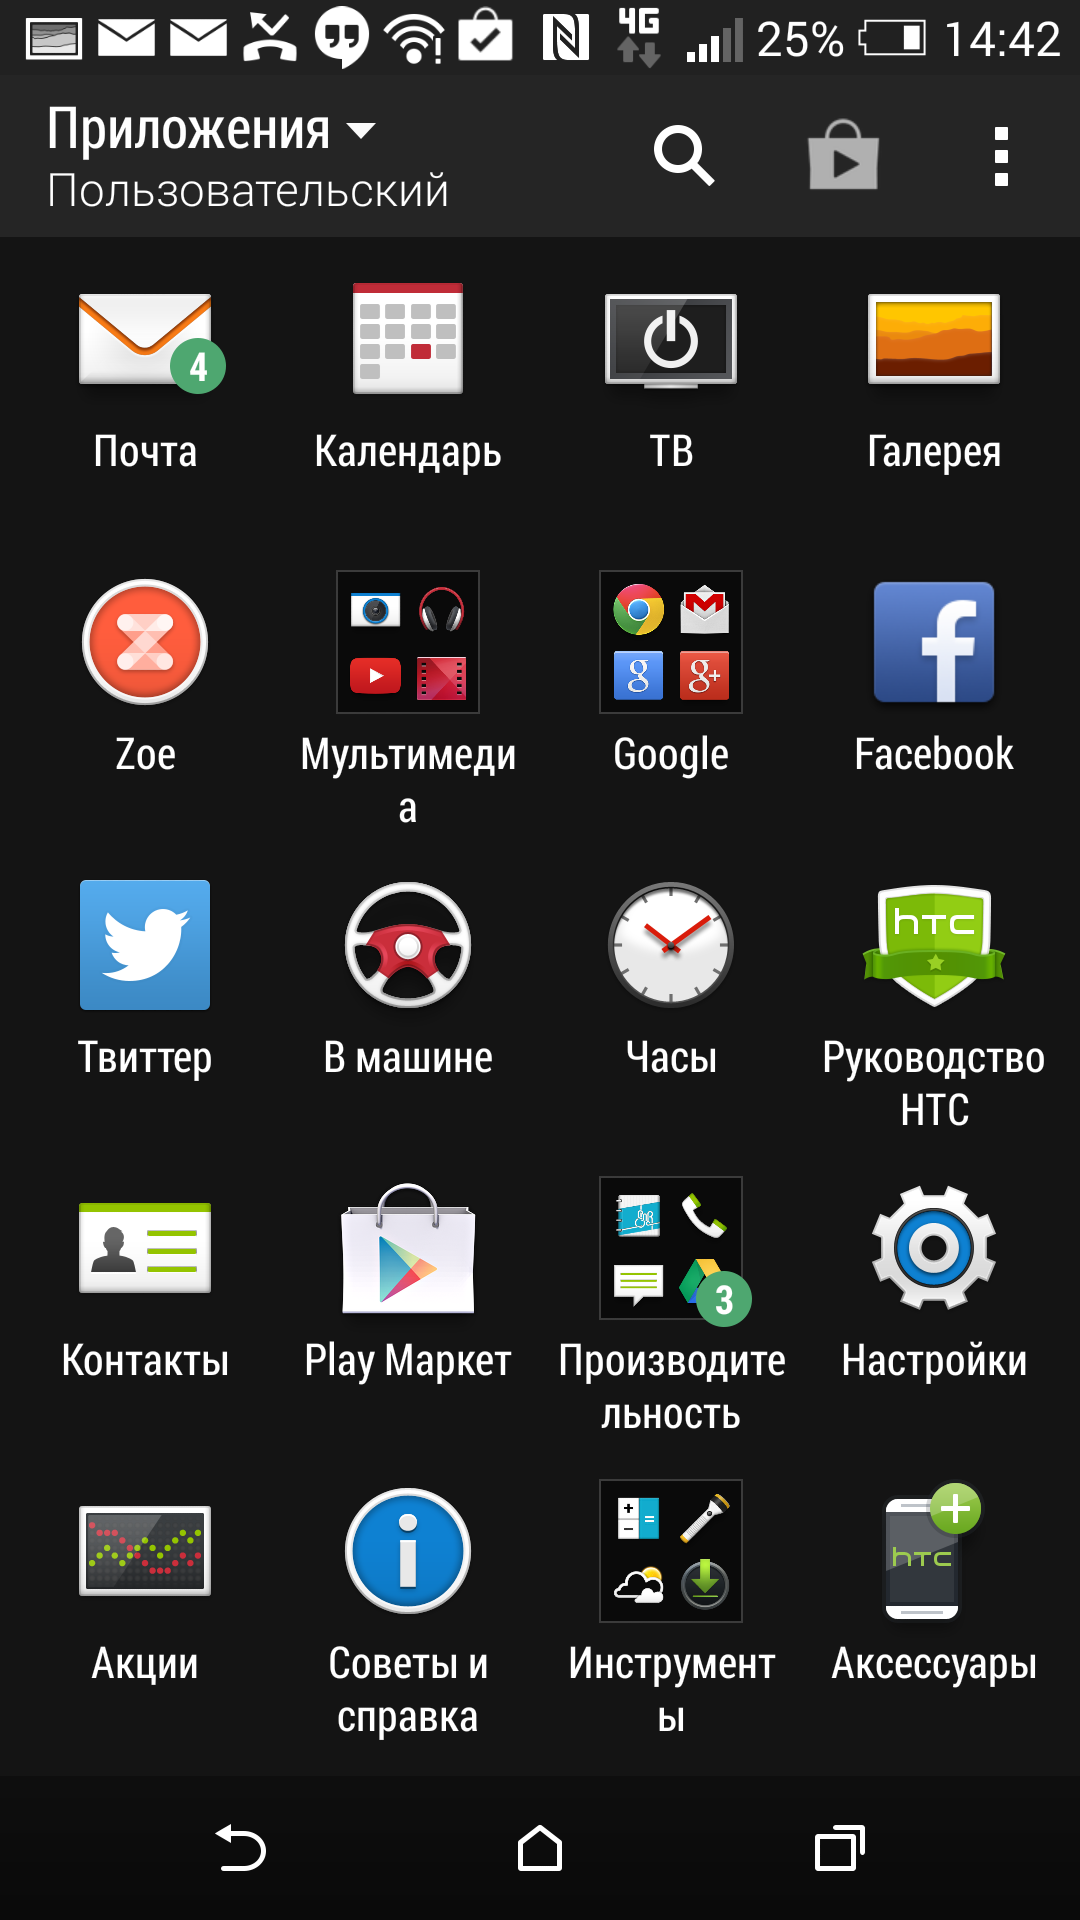 Screenshot_2014-05-19-14-42-25